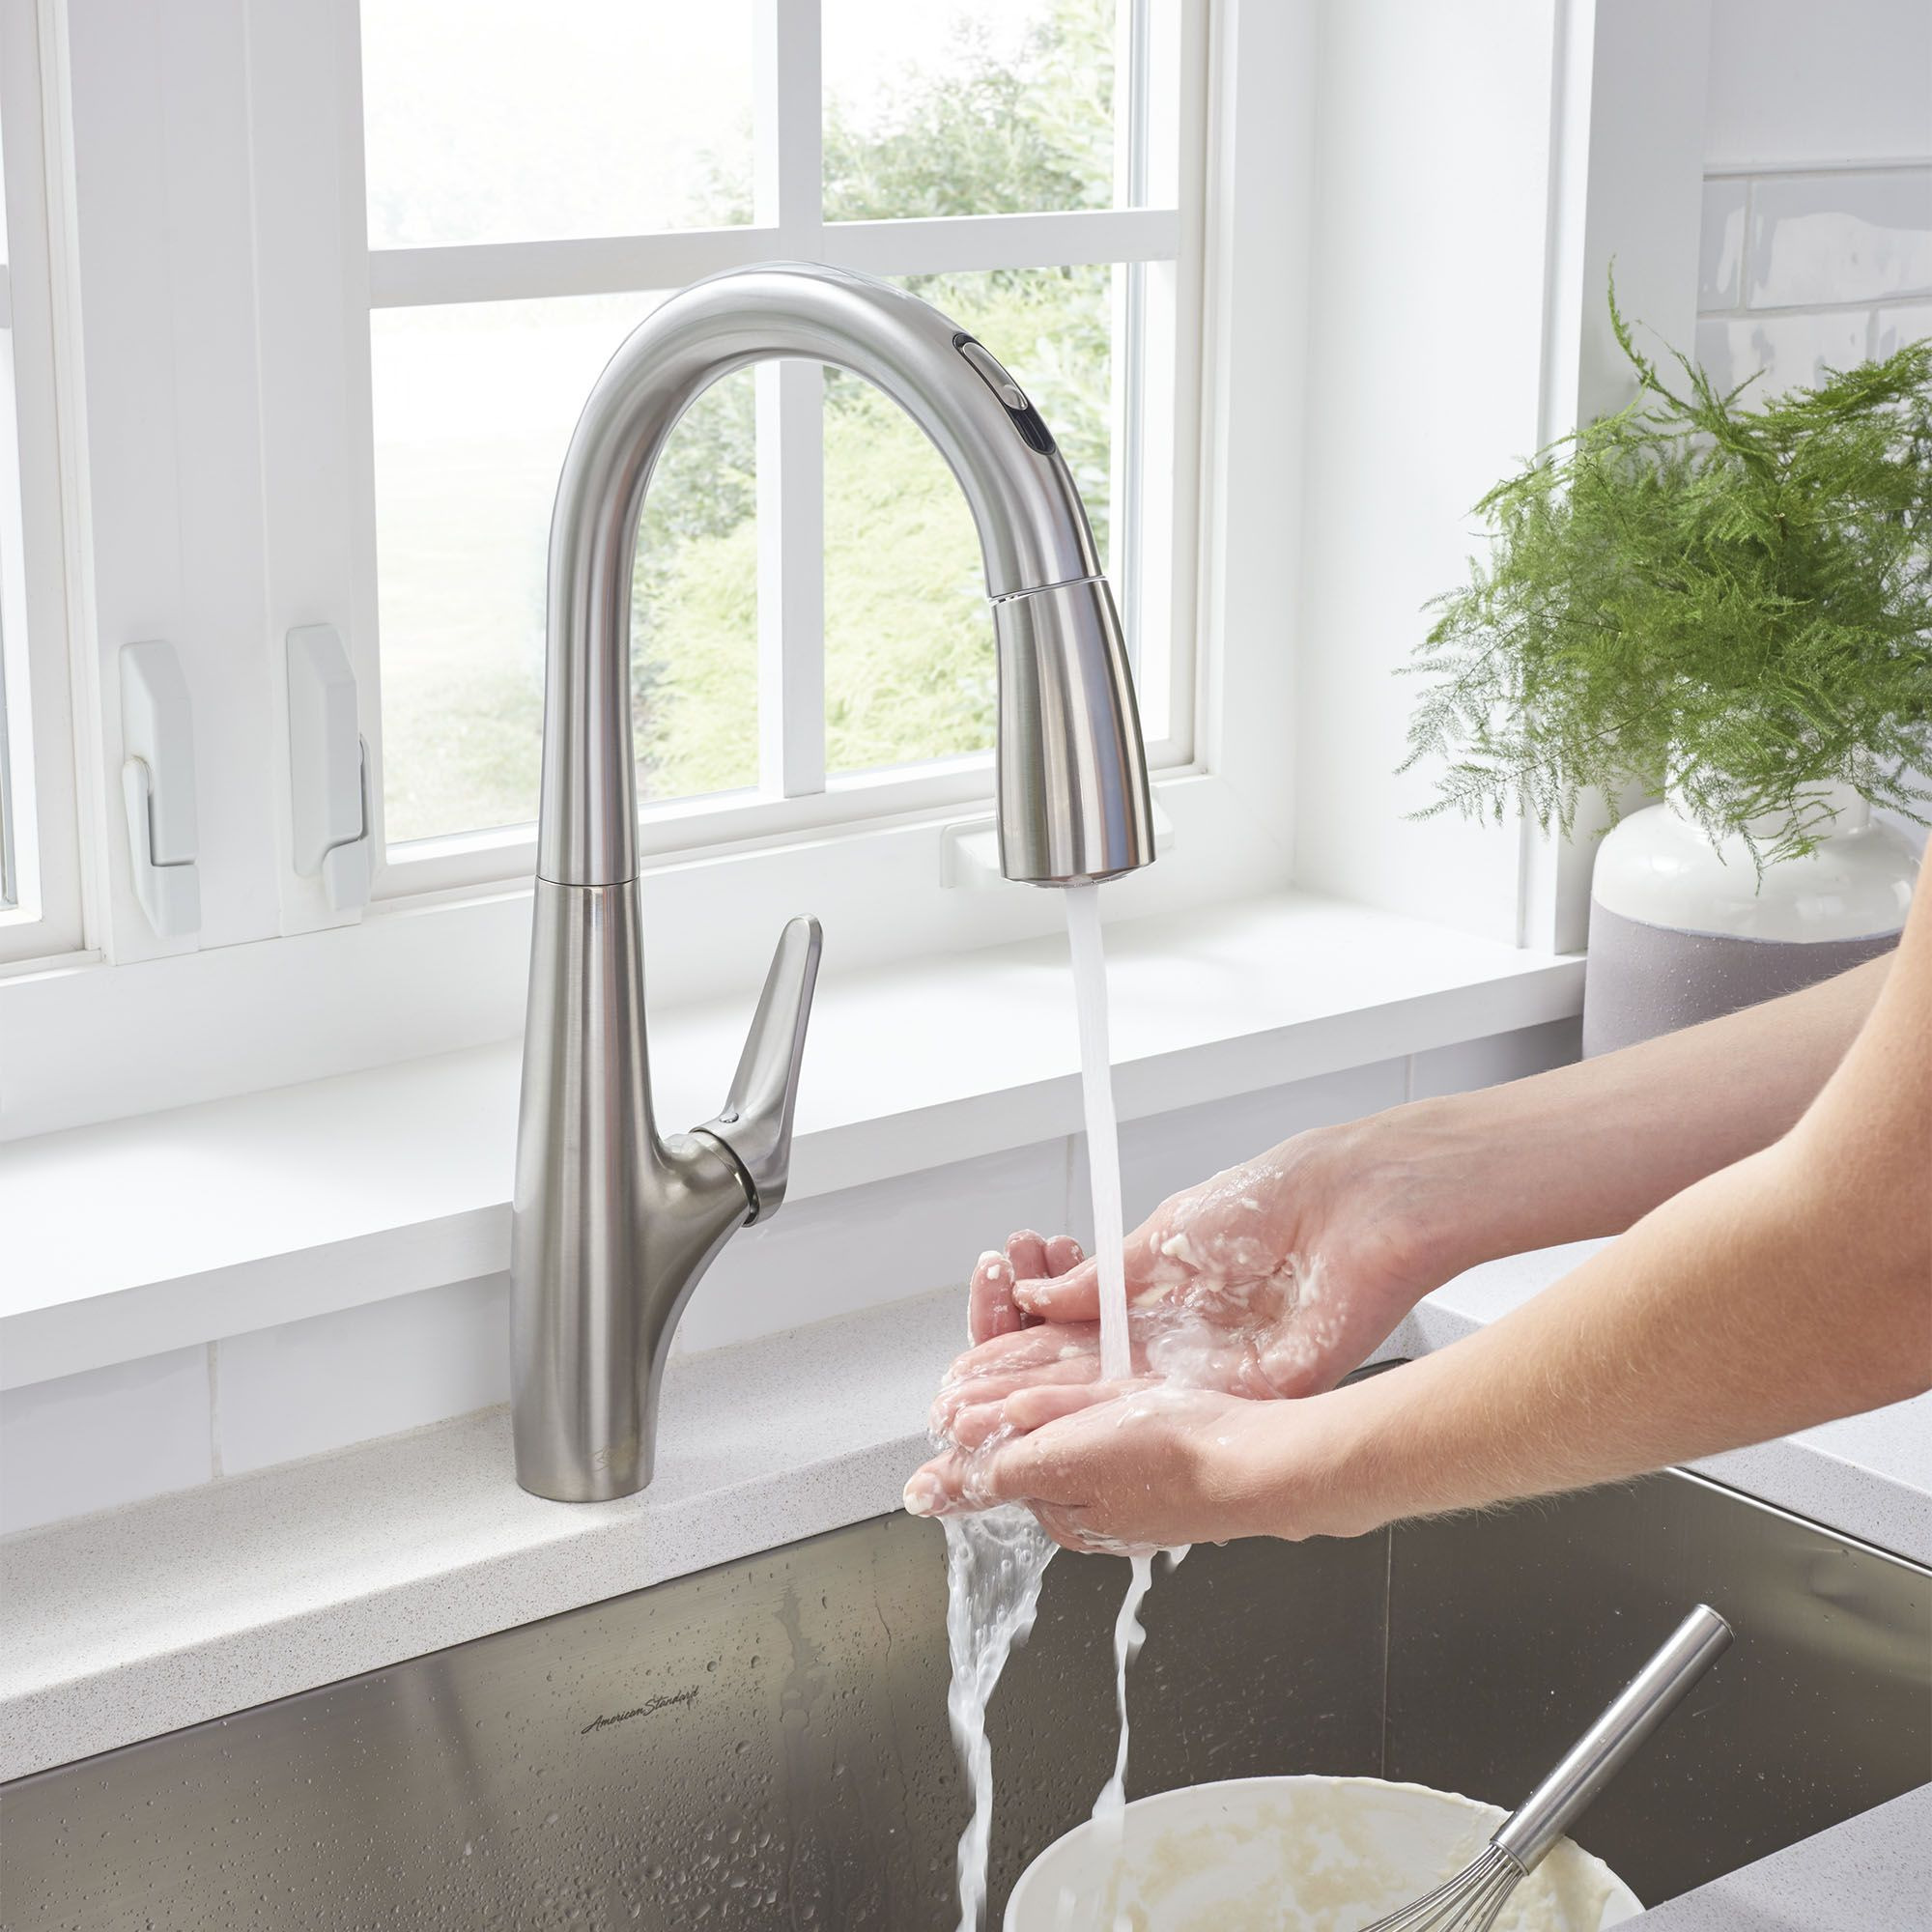 Our Avery Hands Free Faucet Is Versatile And Elegant With